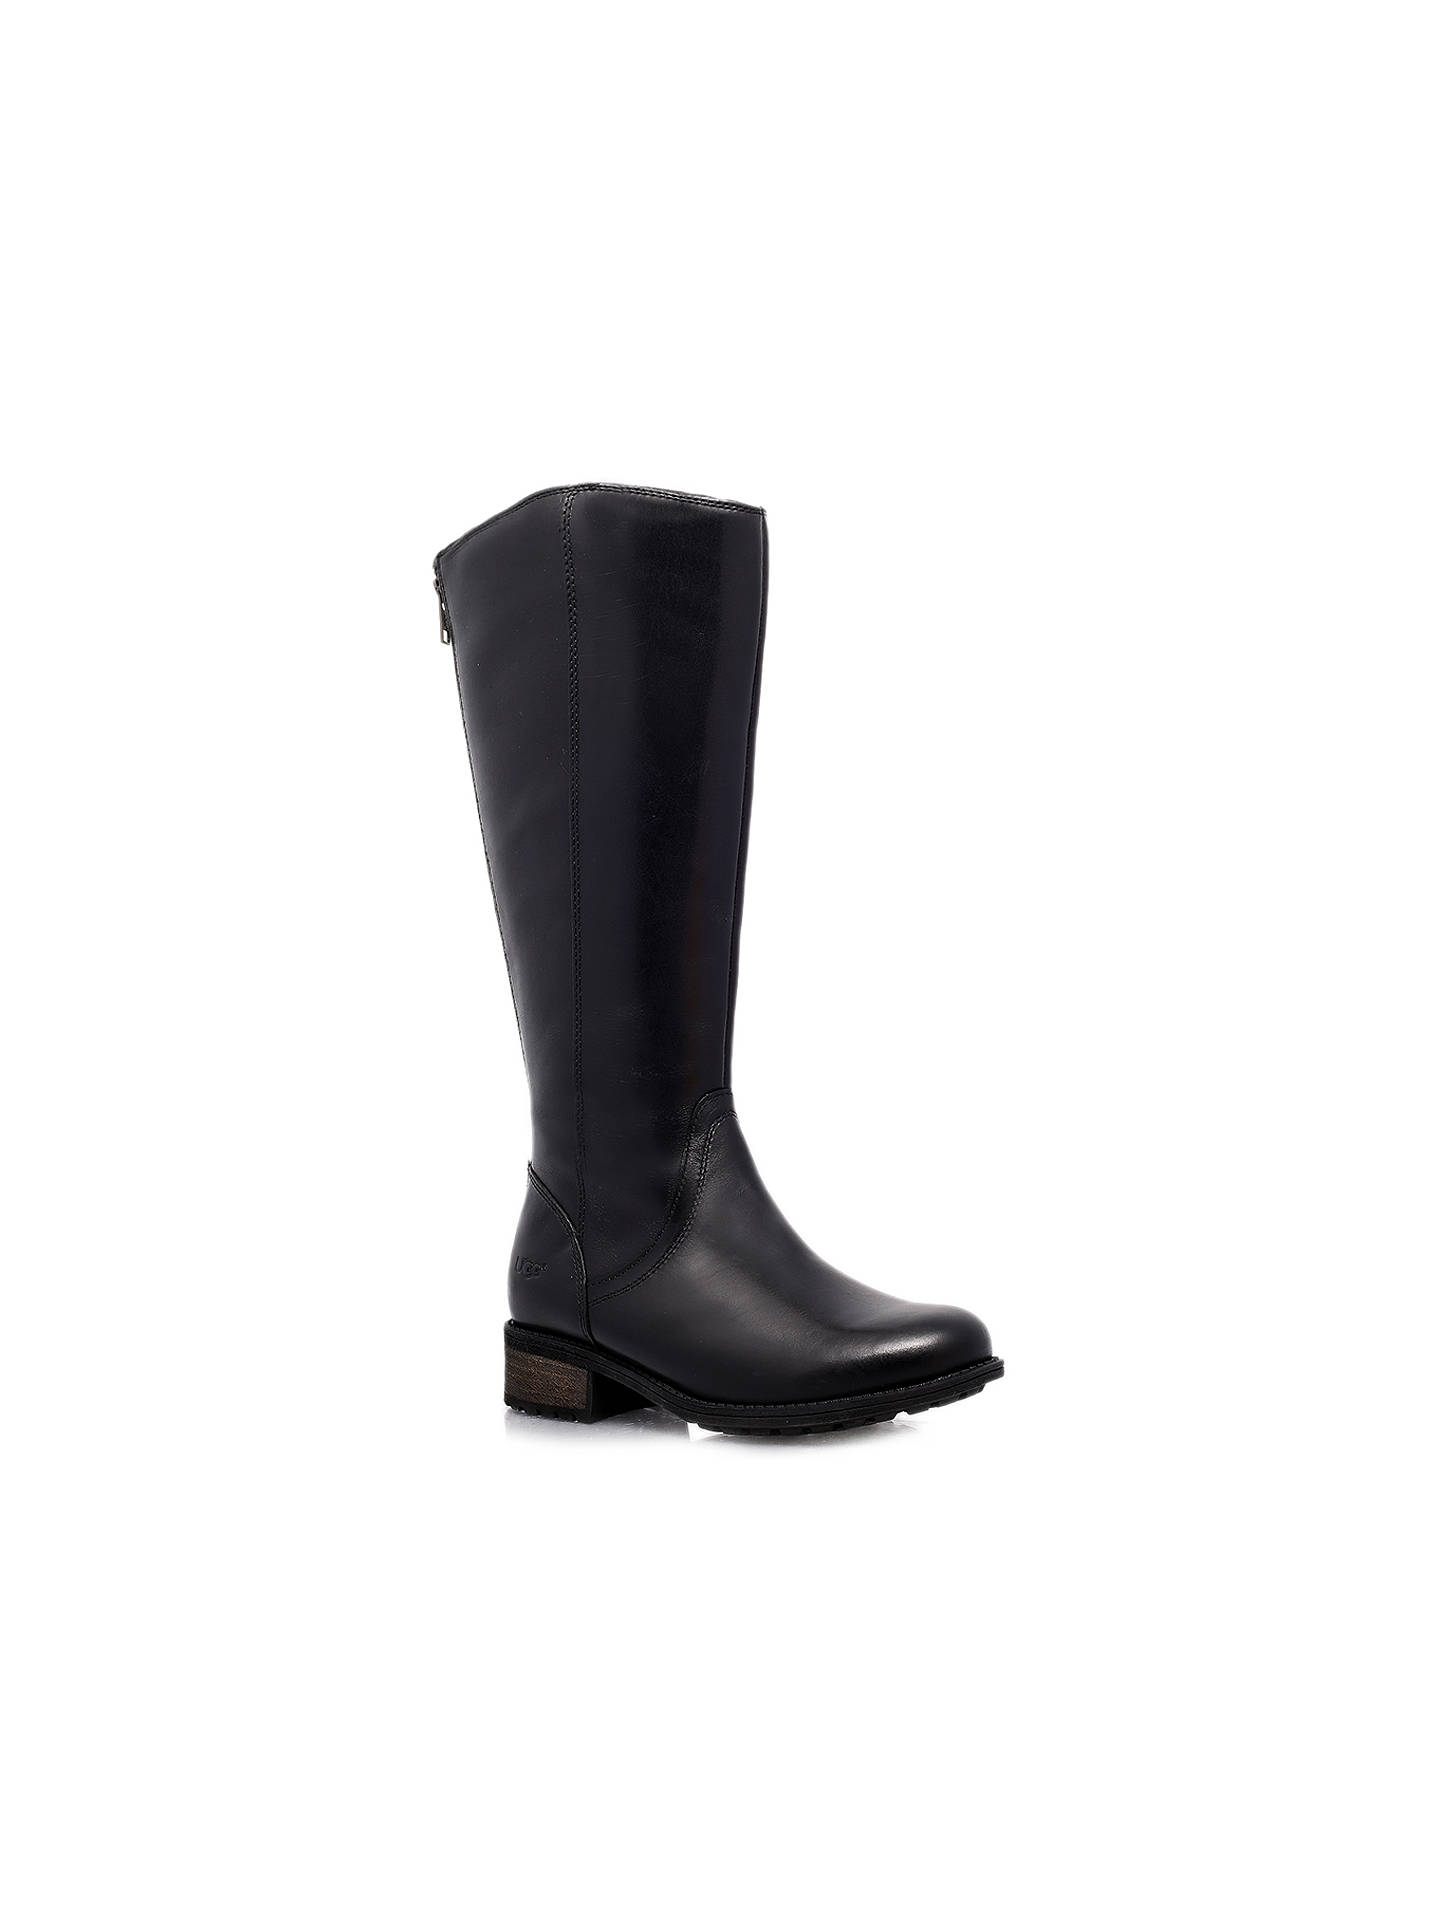 89ba7922f19 UGG Seldon Leather Knee High Boots at John Lewis   Partners